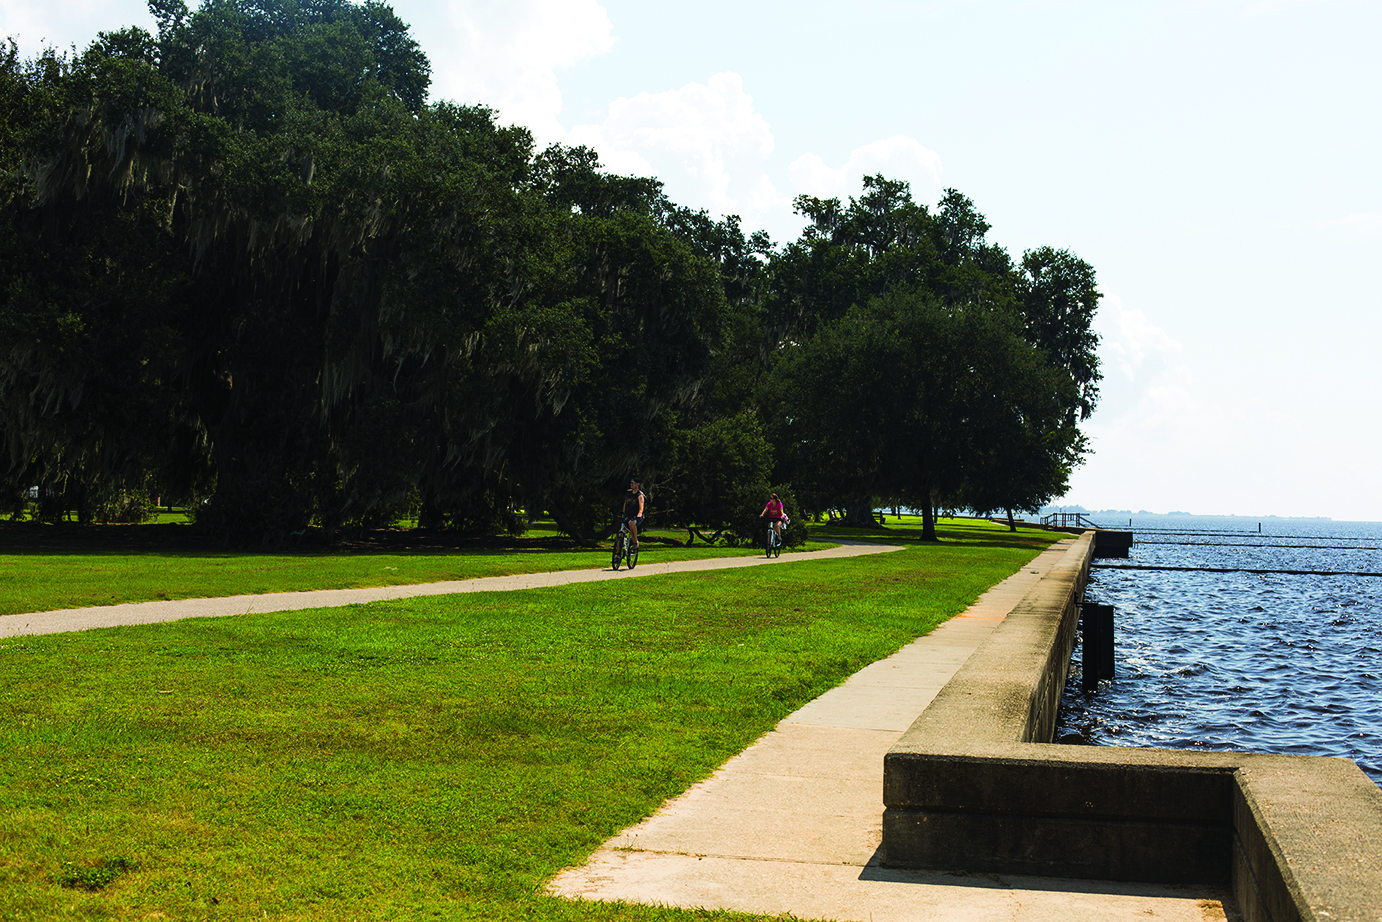 Cyclists+ride+down+Mandeville%27s+lakefront+on+a+sunny+day.+The+seawall+pictured+is+regularly+overtopped+during+tropical+systems%2C+leading+to+inland+flooding.+Photo+credit%3A+Barbara+Brown